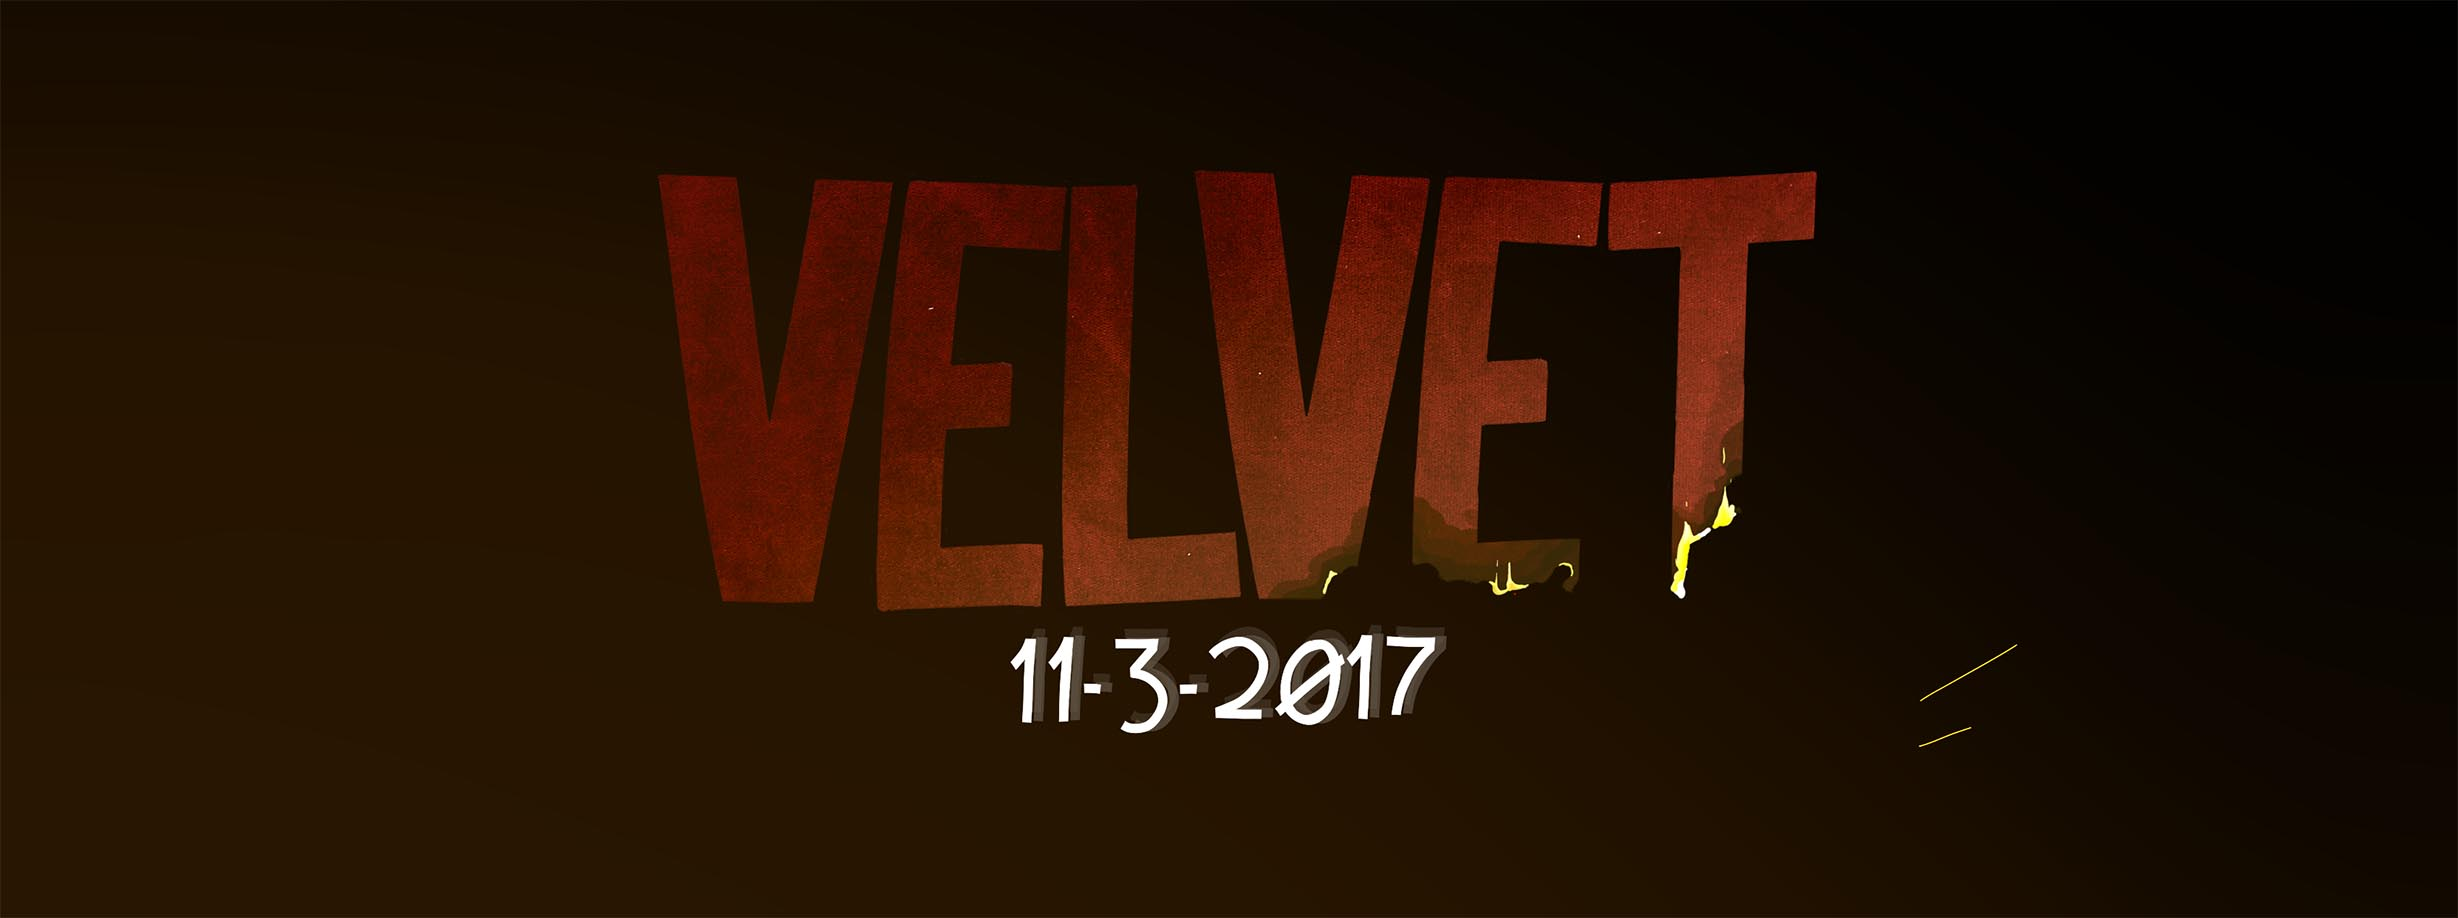 Velvet Available November 3, 2017